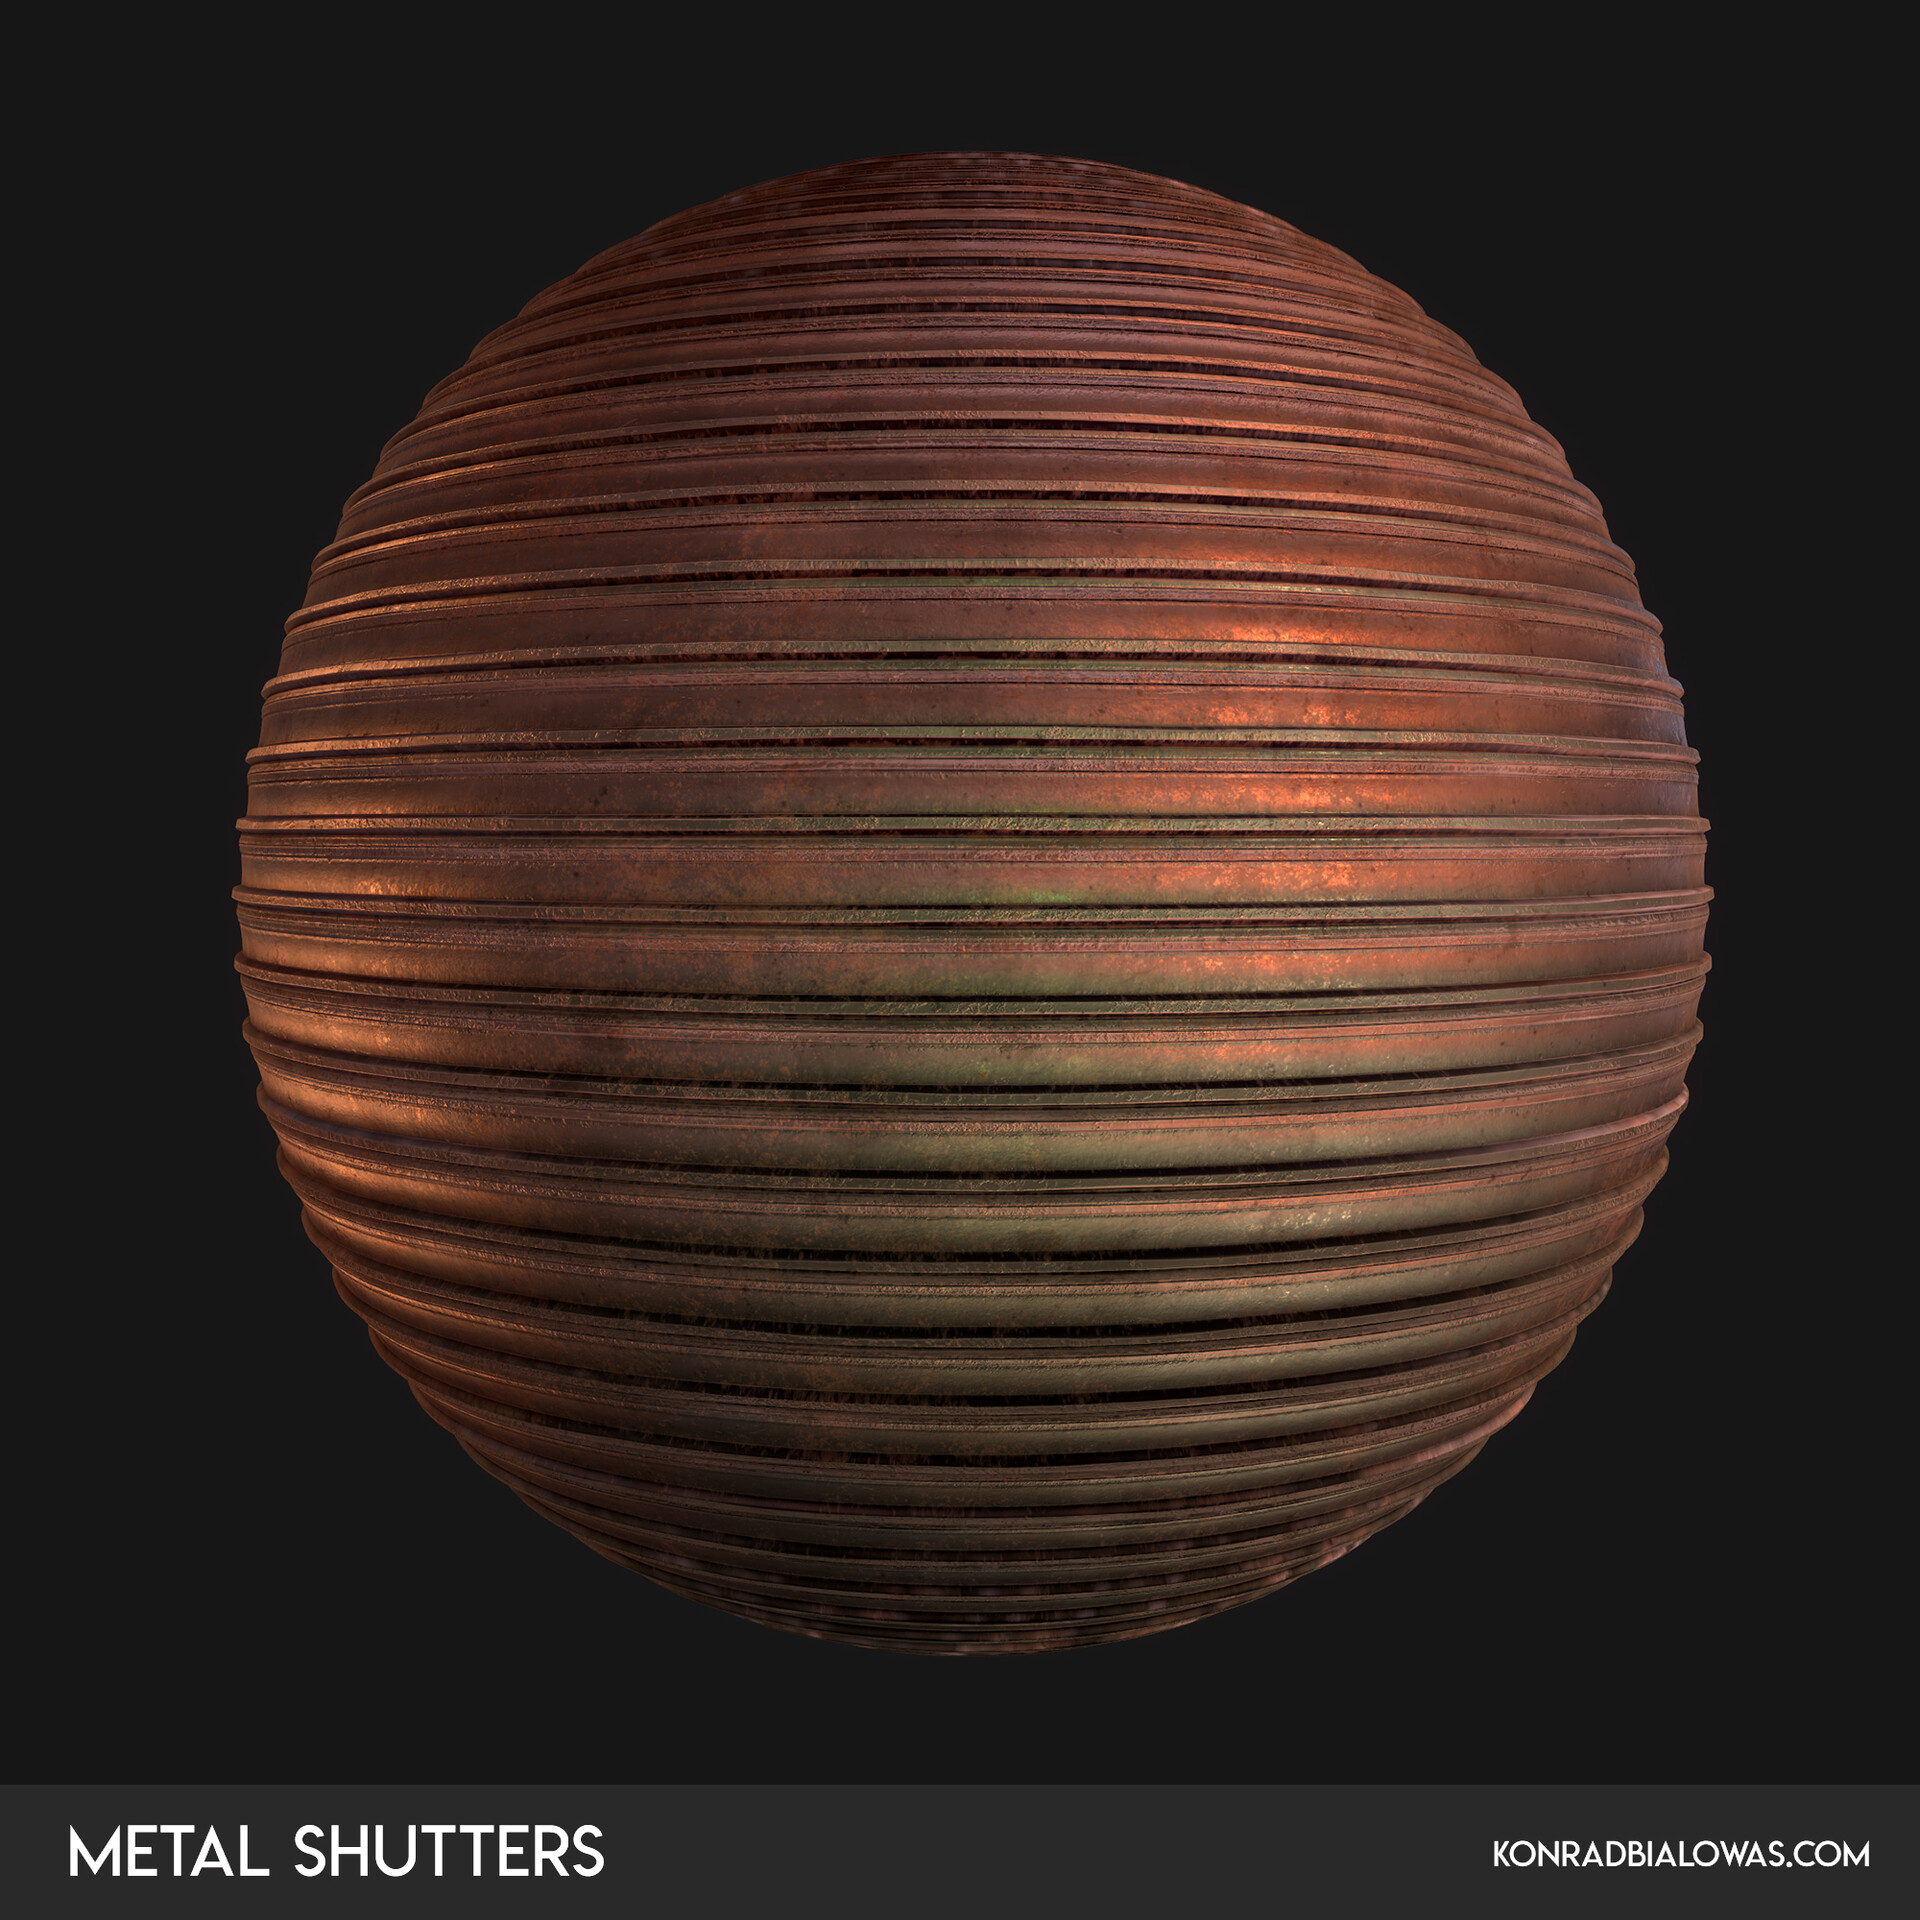 Metal Shutters procedural material created in Substance Designer